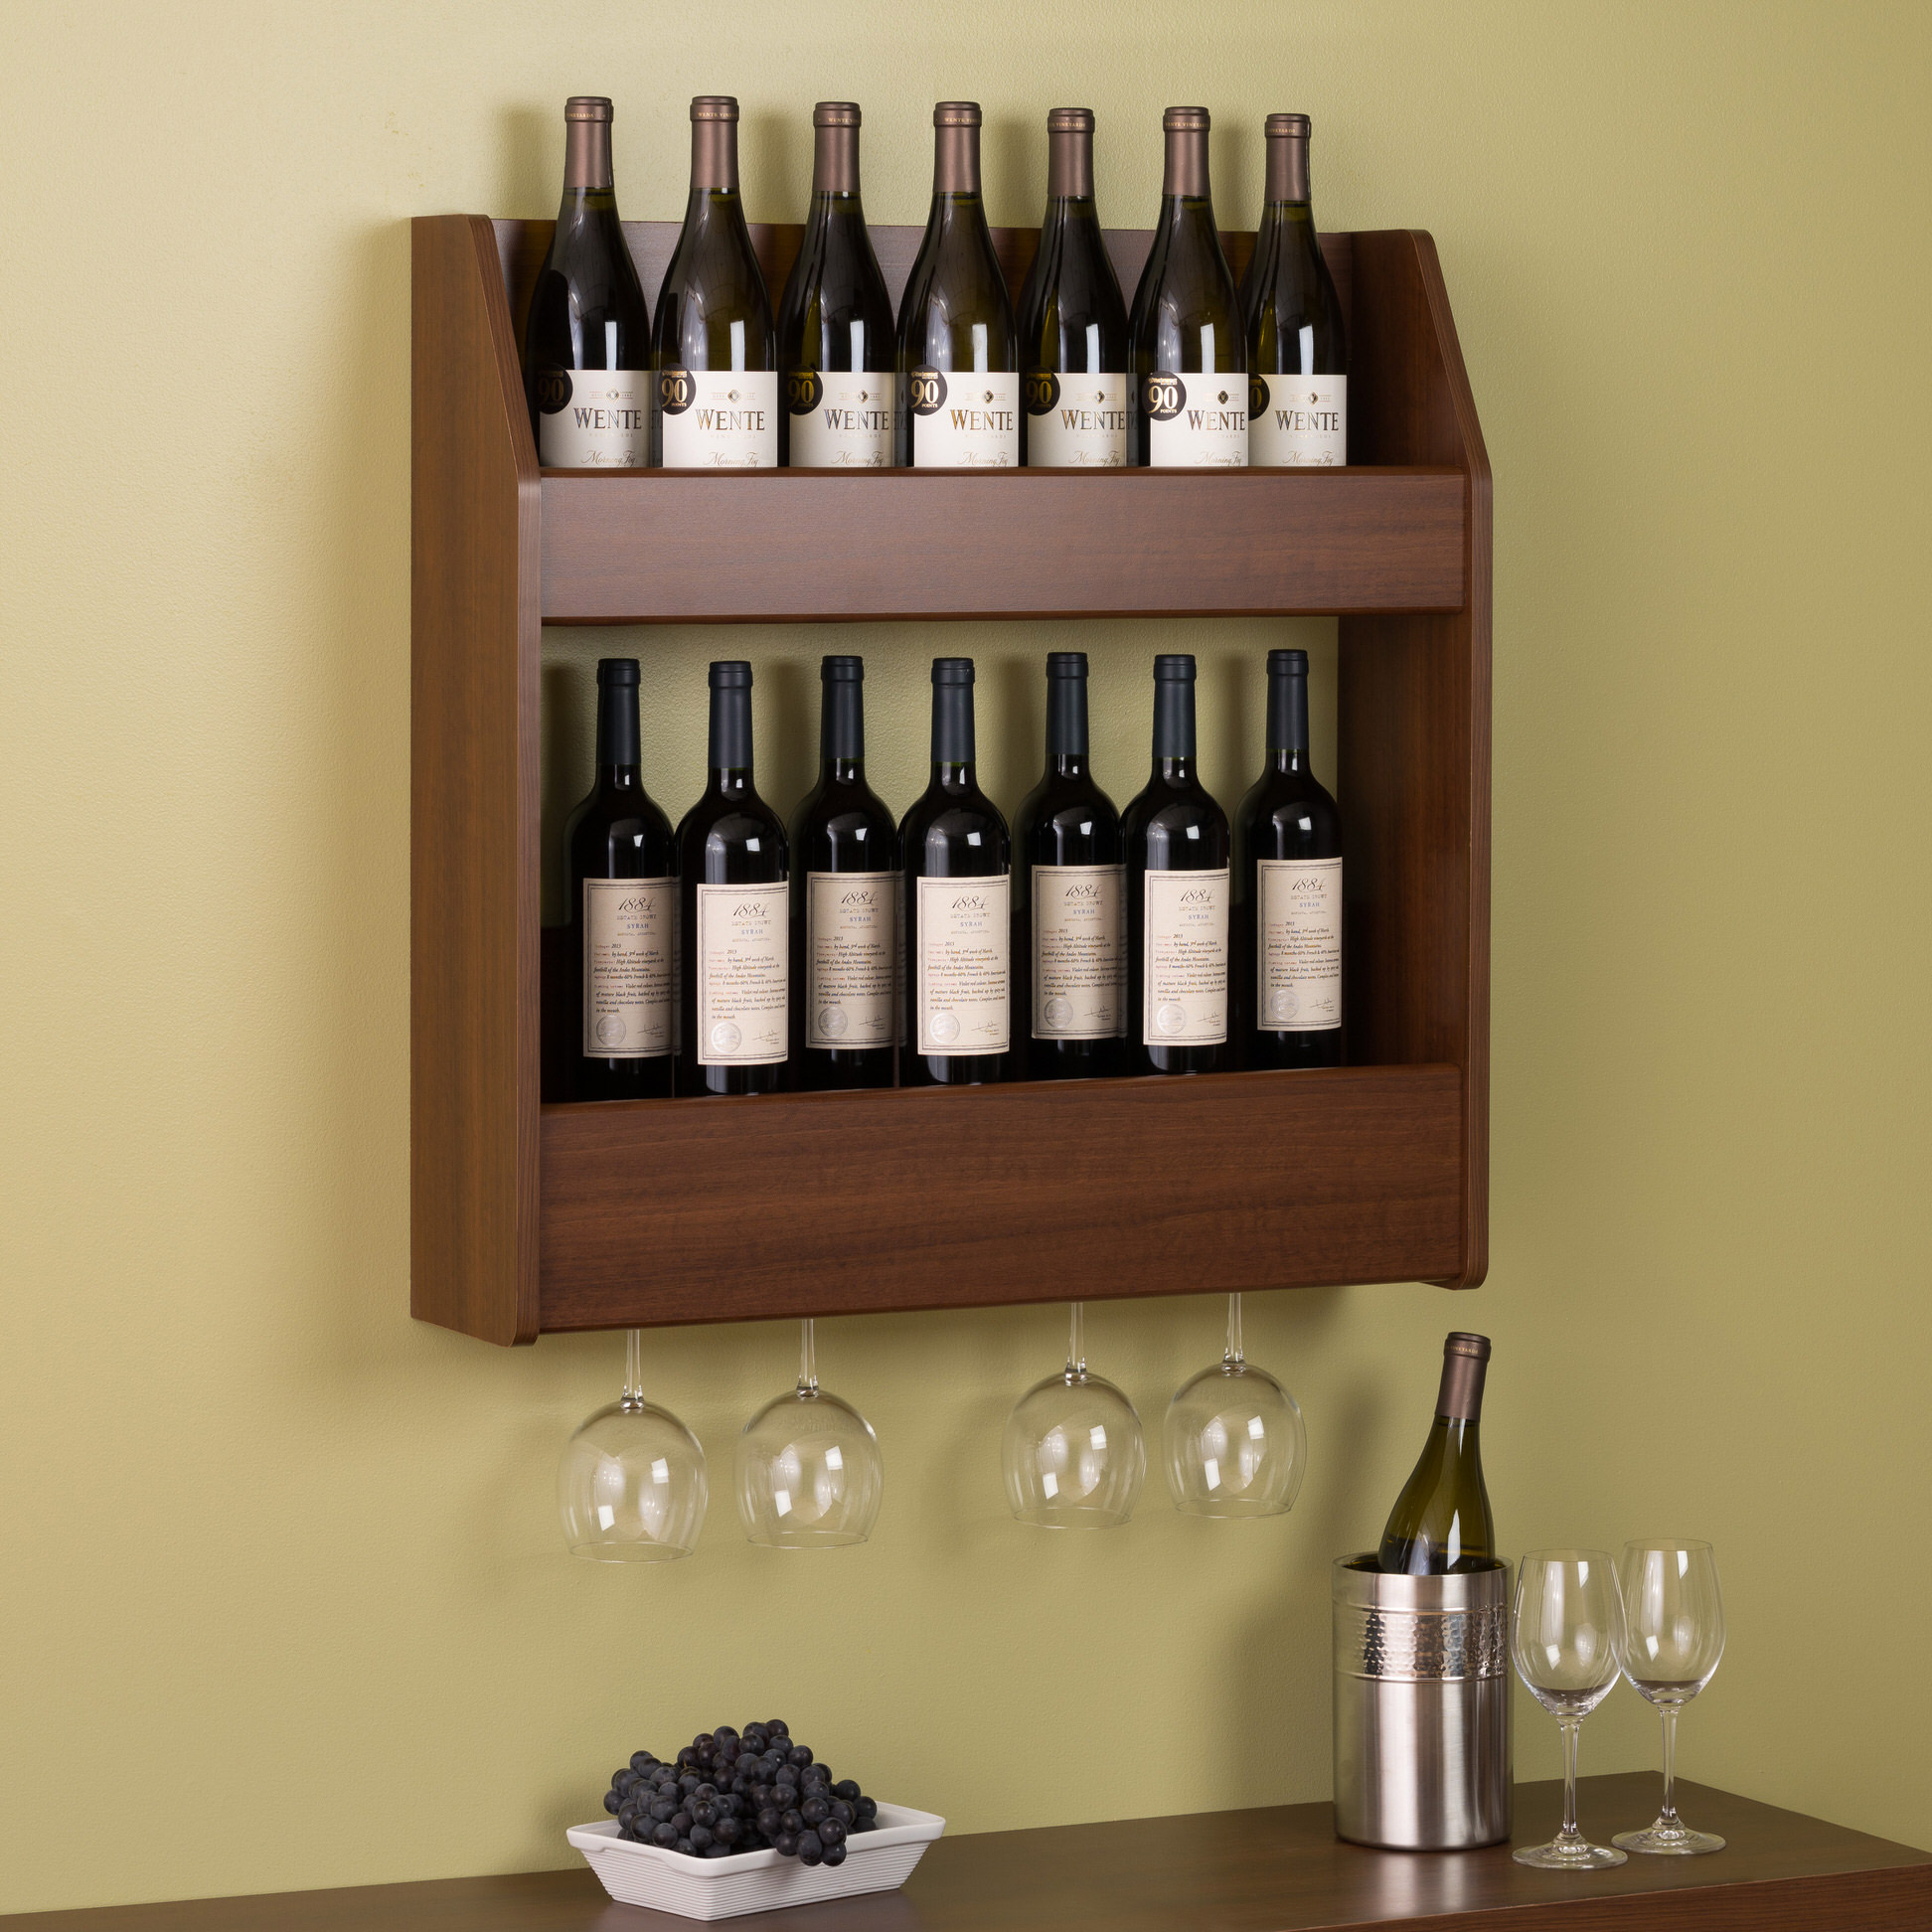 Wine Rack Built Into Wall 2 Tier Floating Wine And Liquor Rack By Prepac